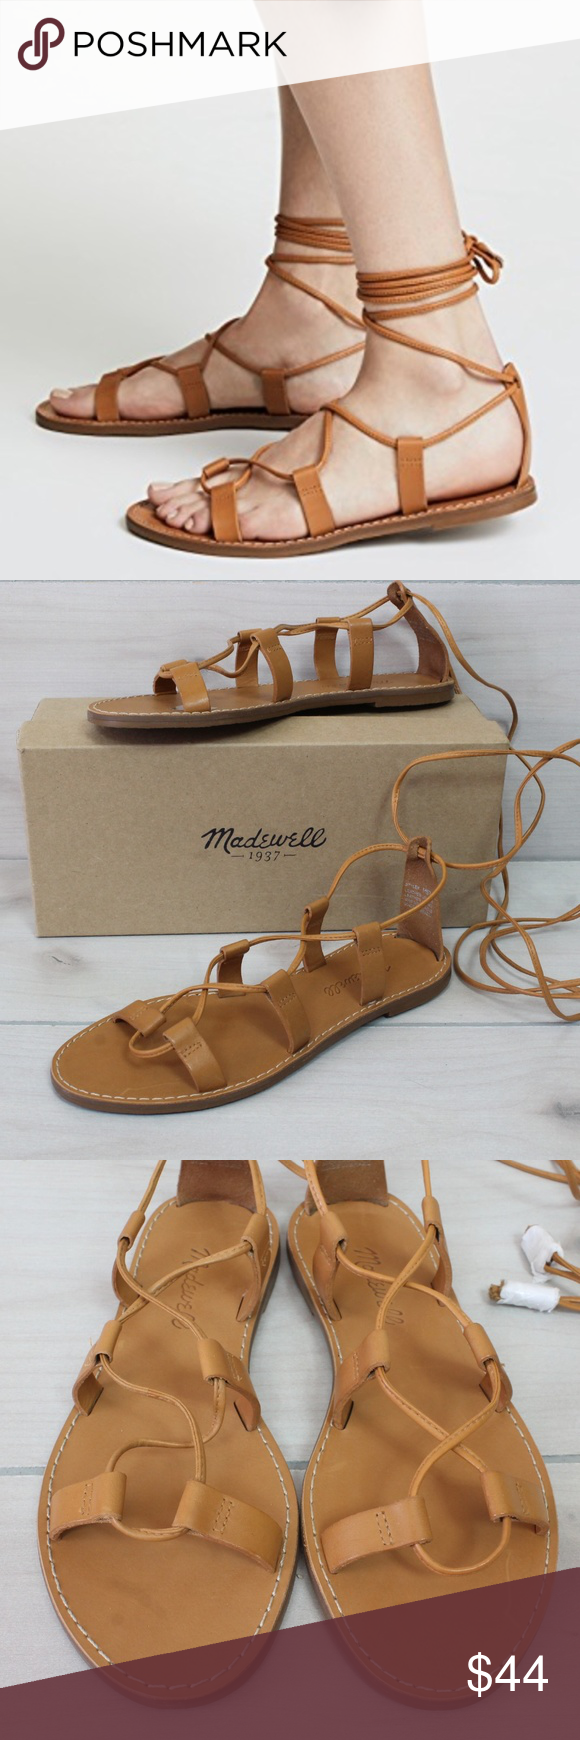 67d2db916238 Madewell Outstock Lace-Up Sandals Desert Camel 7 Madewell Outstock Wrap  Sandals in